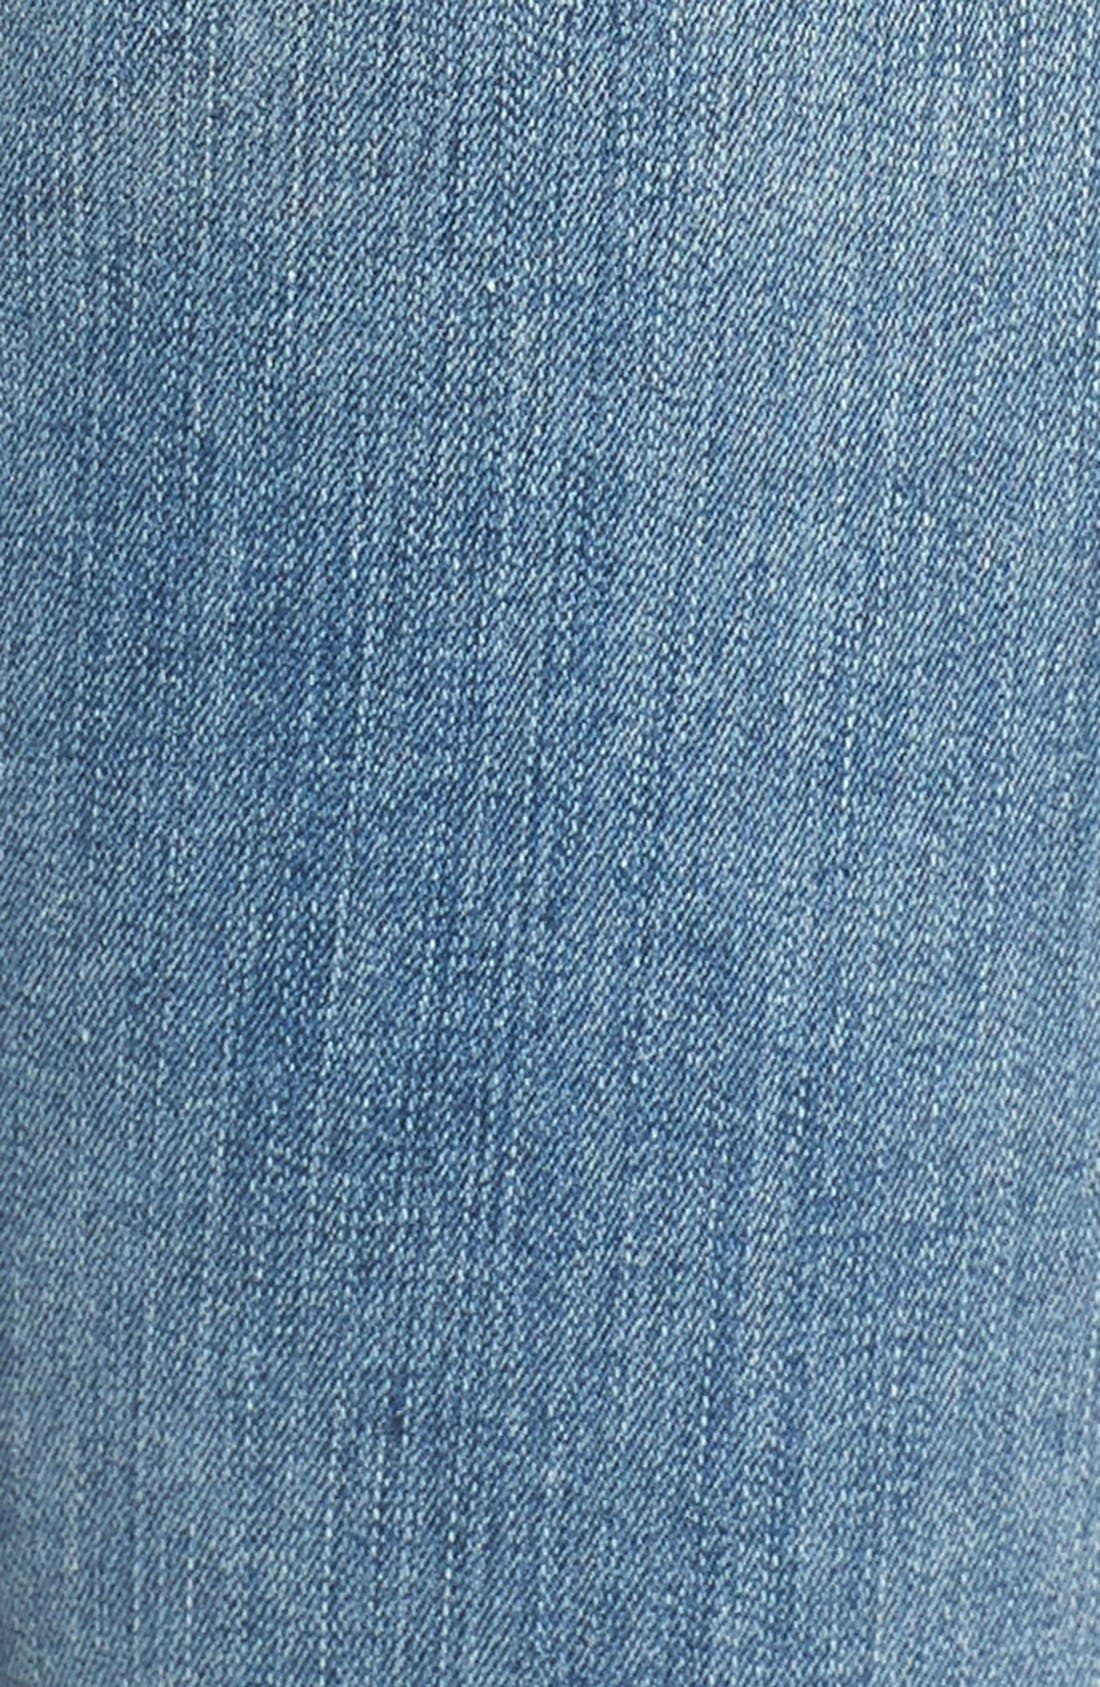 Alternate Image 5  - Good American Good Cuts High Rise Boyfriend Jeans (Blue 012) (Extended Sizes)